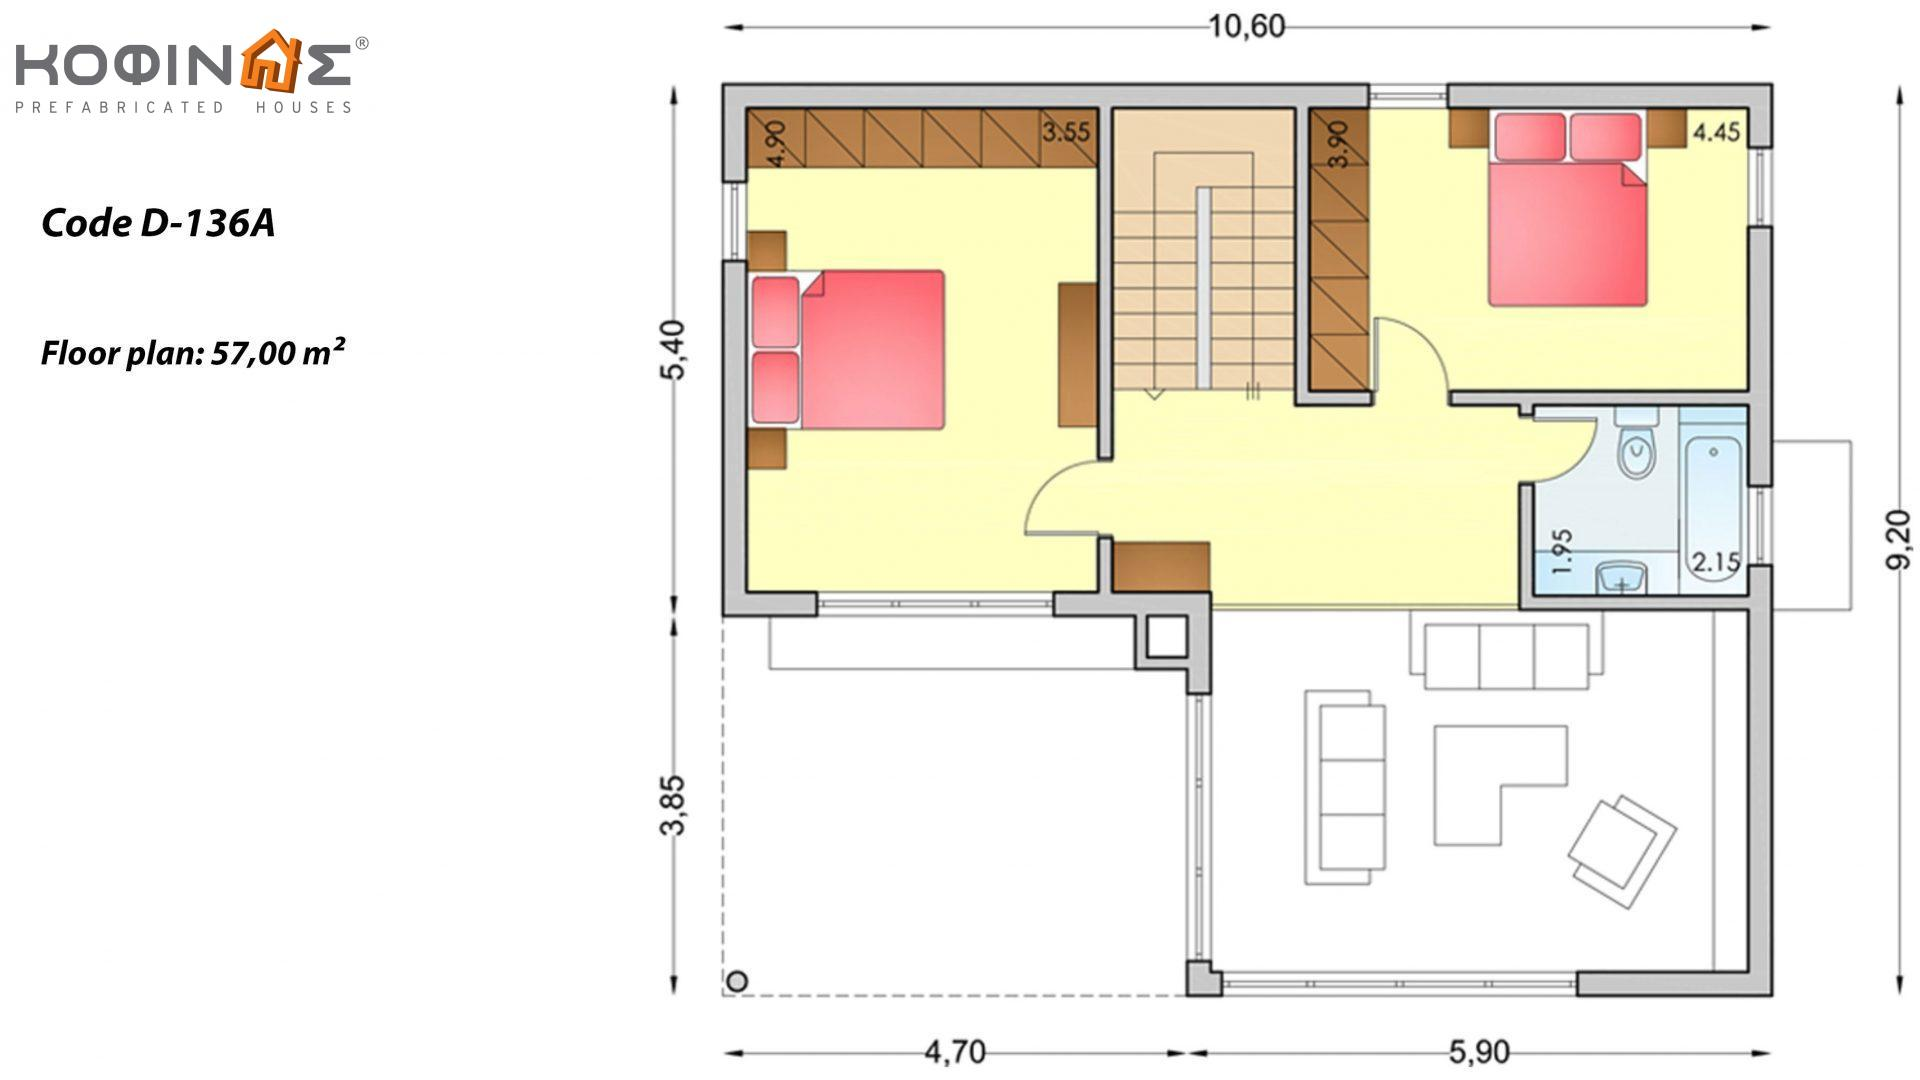 2-story house D-136a, total surface of 136,72 m²,roofed areas 19.40 m²